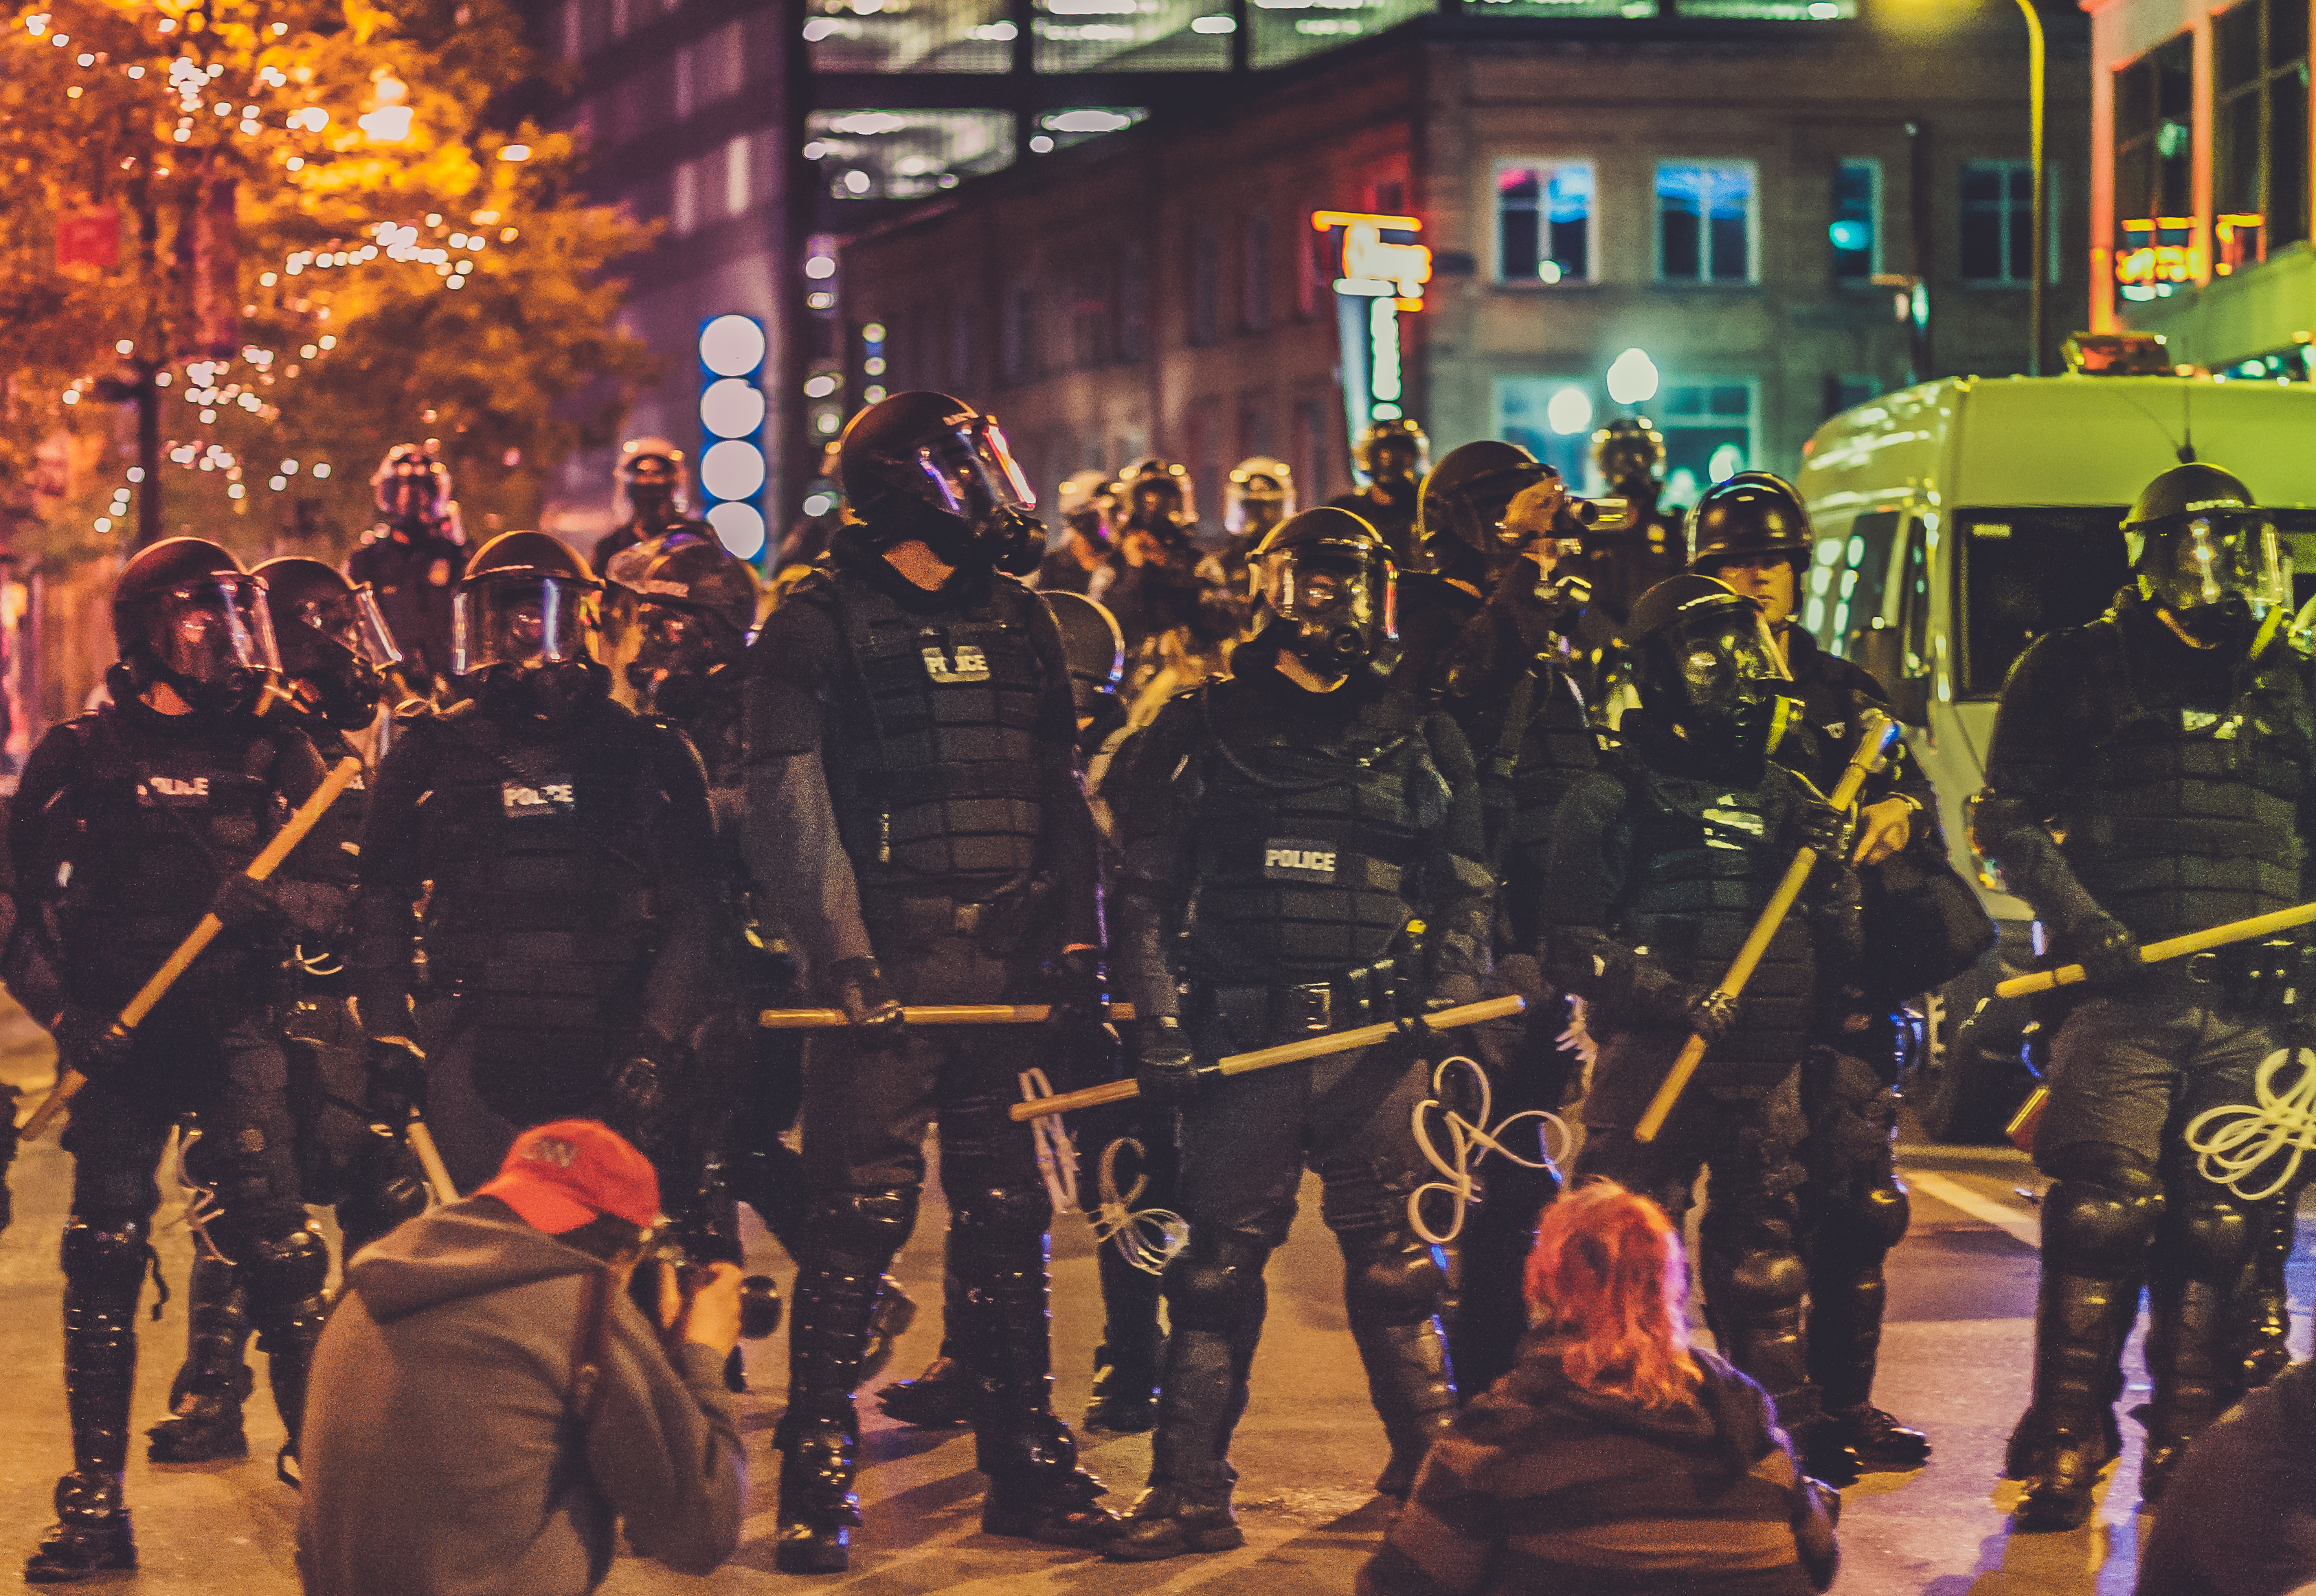 Police Riot Gear, Protesters